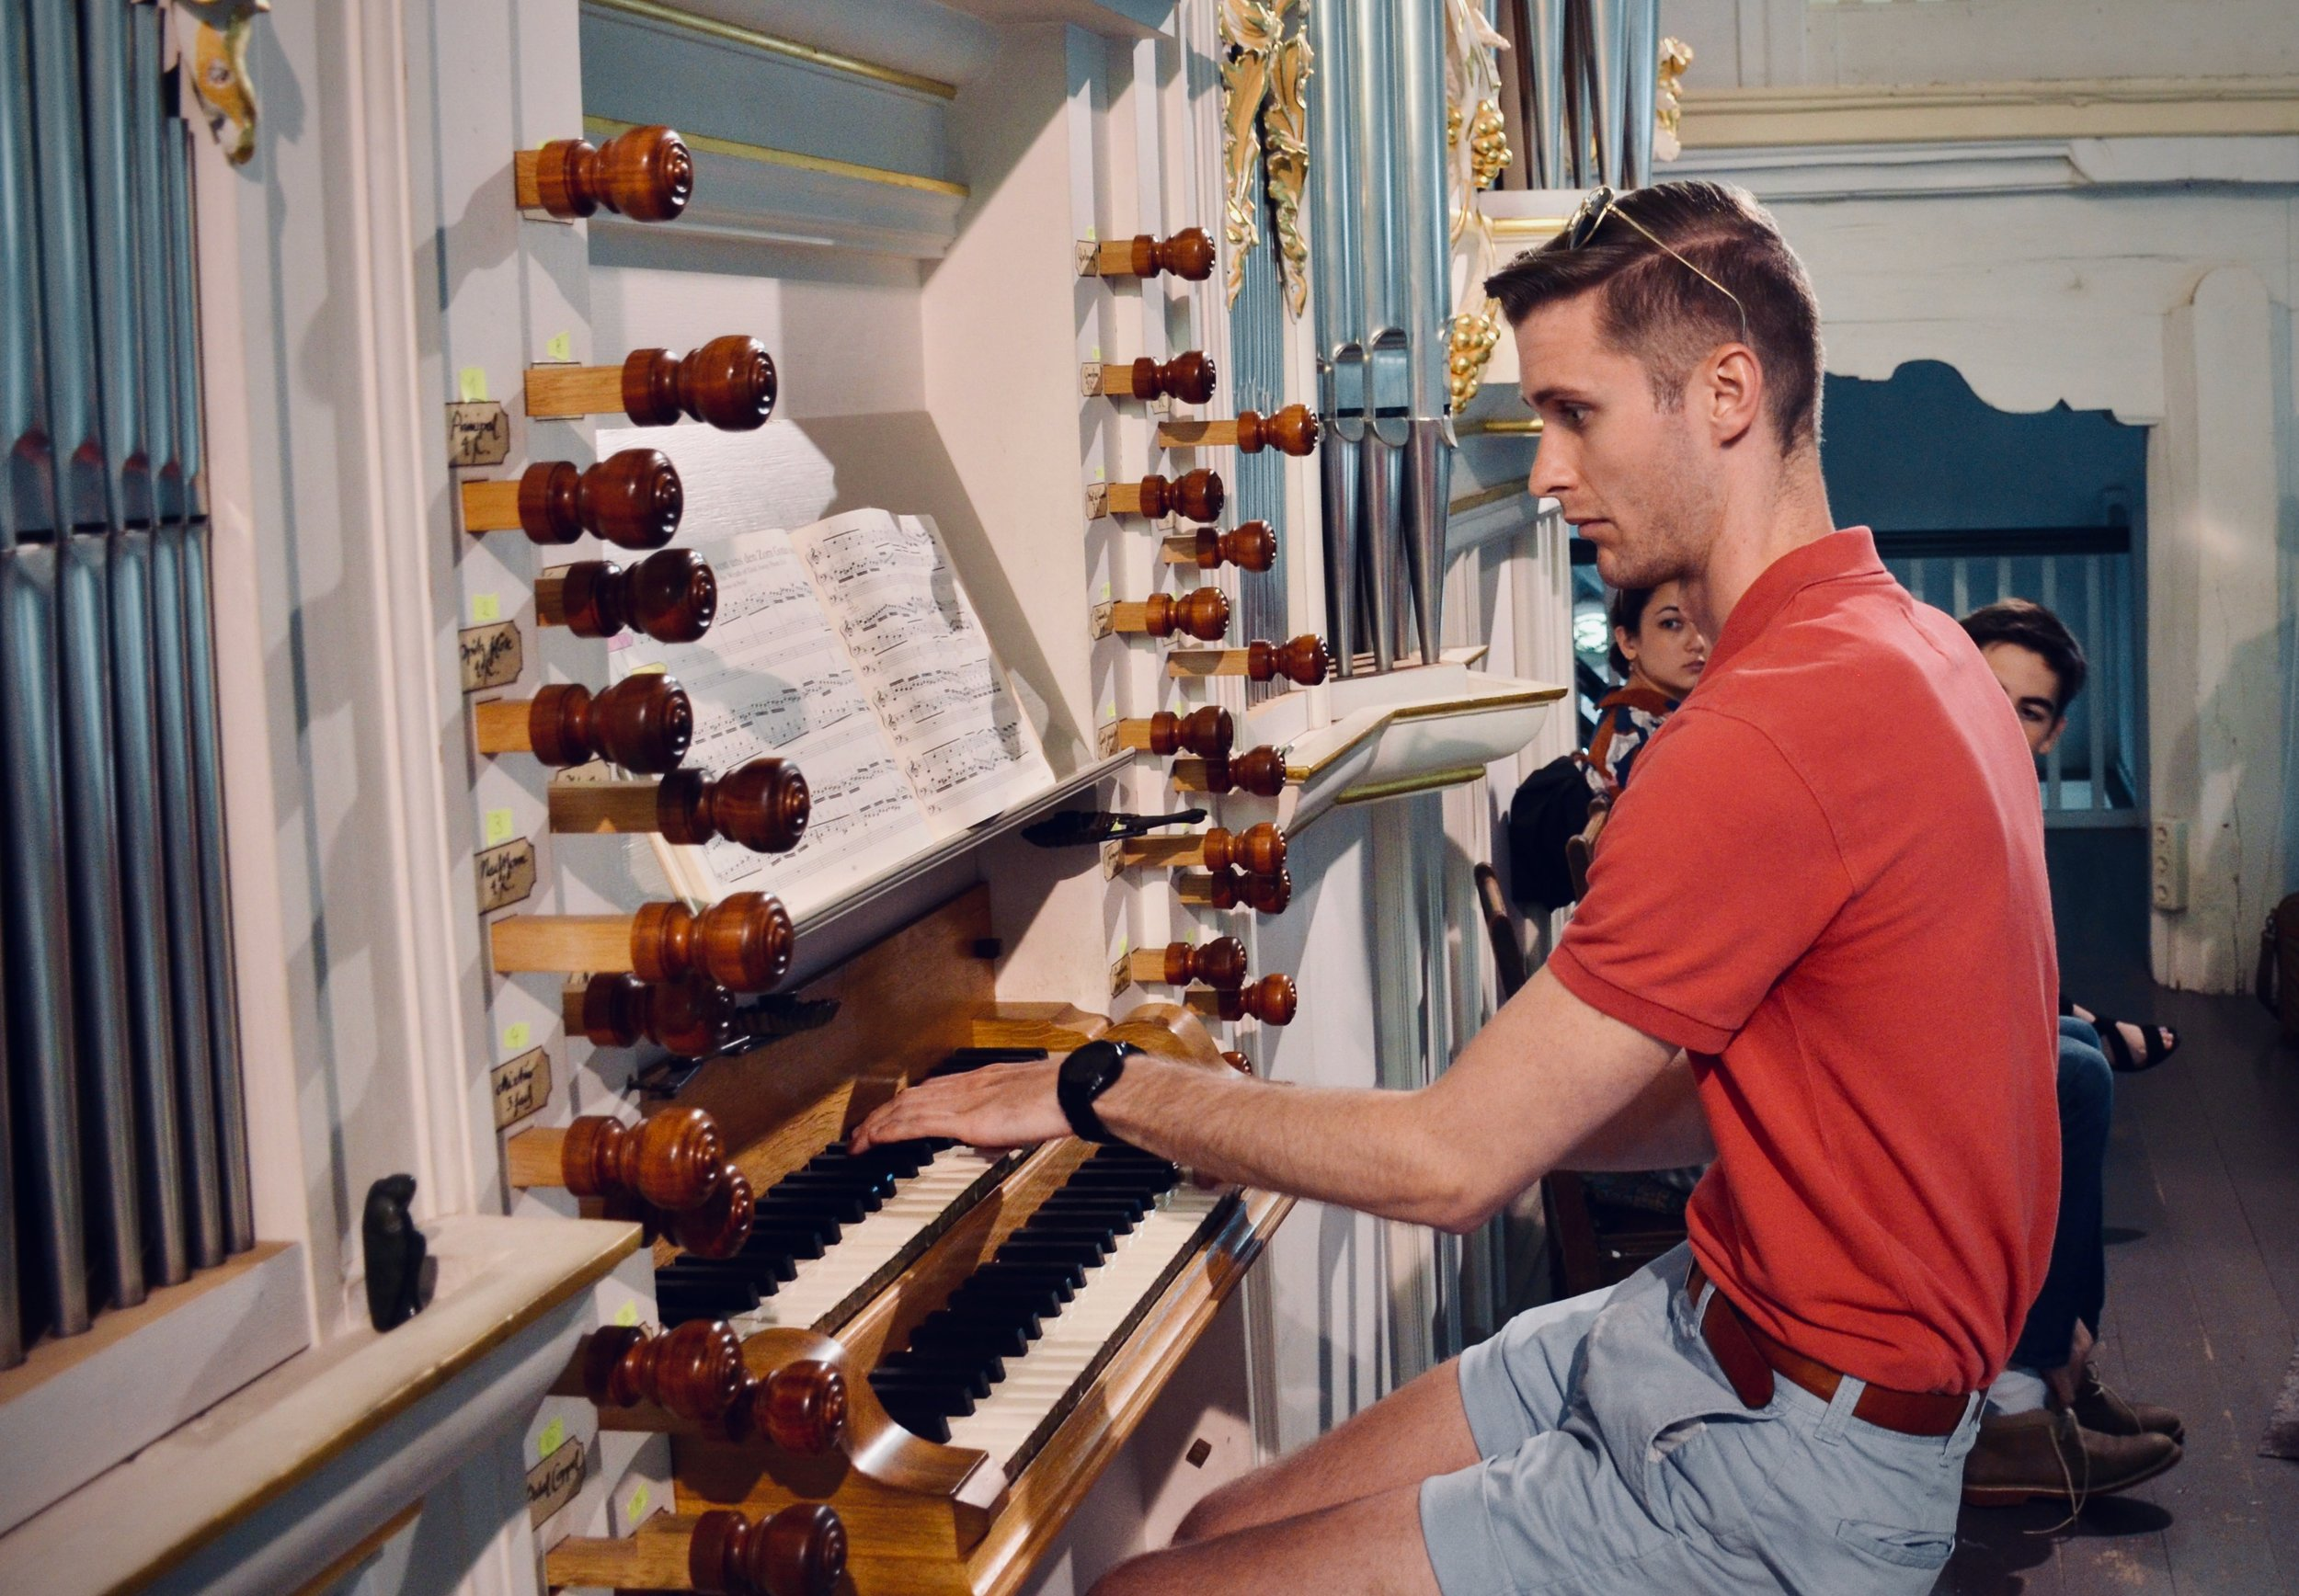 Evan Currie plays the reconstructed Wender Organ (1703/2000) in Bachkirche, Arnstadt.